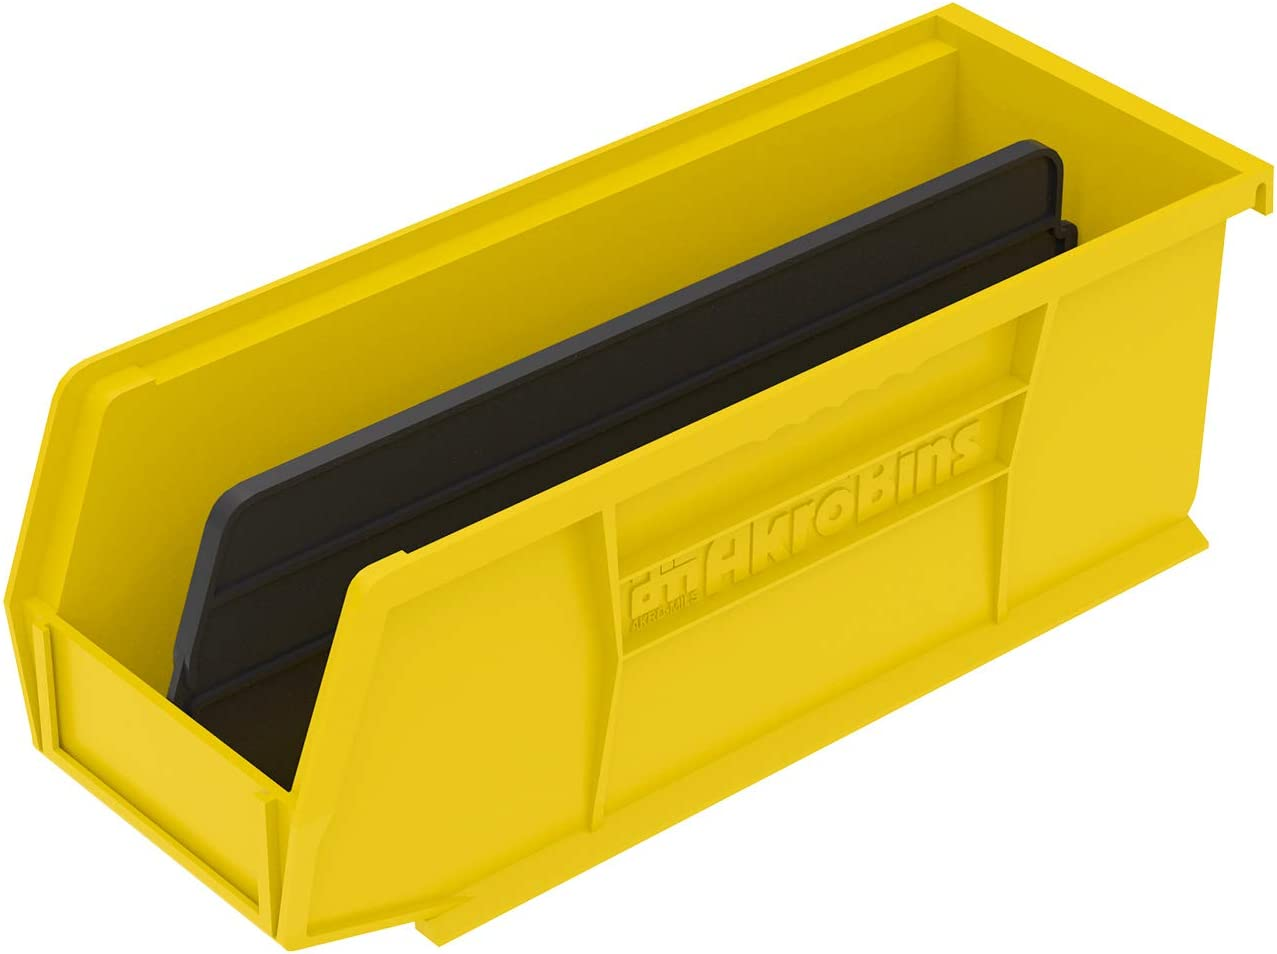 Akro-Mils 30224 Plastic Storage Stacking AkroBin, 11-Inch by 4-Inch by 4-Inch, Clear, Case of 12 Yellow